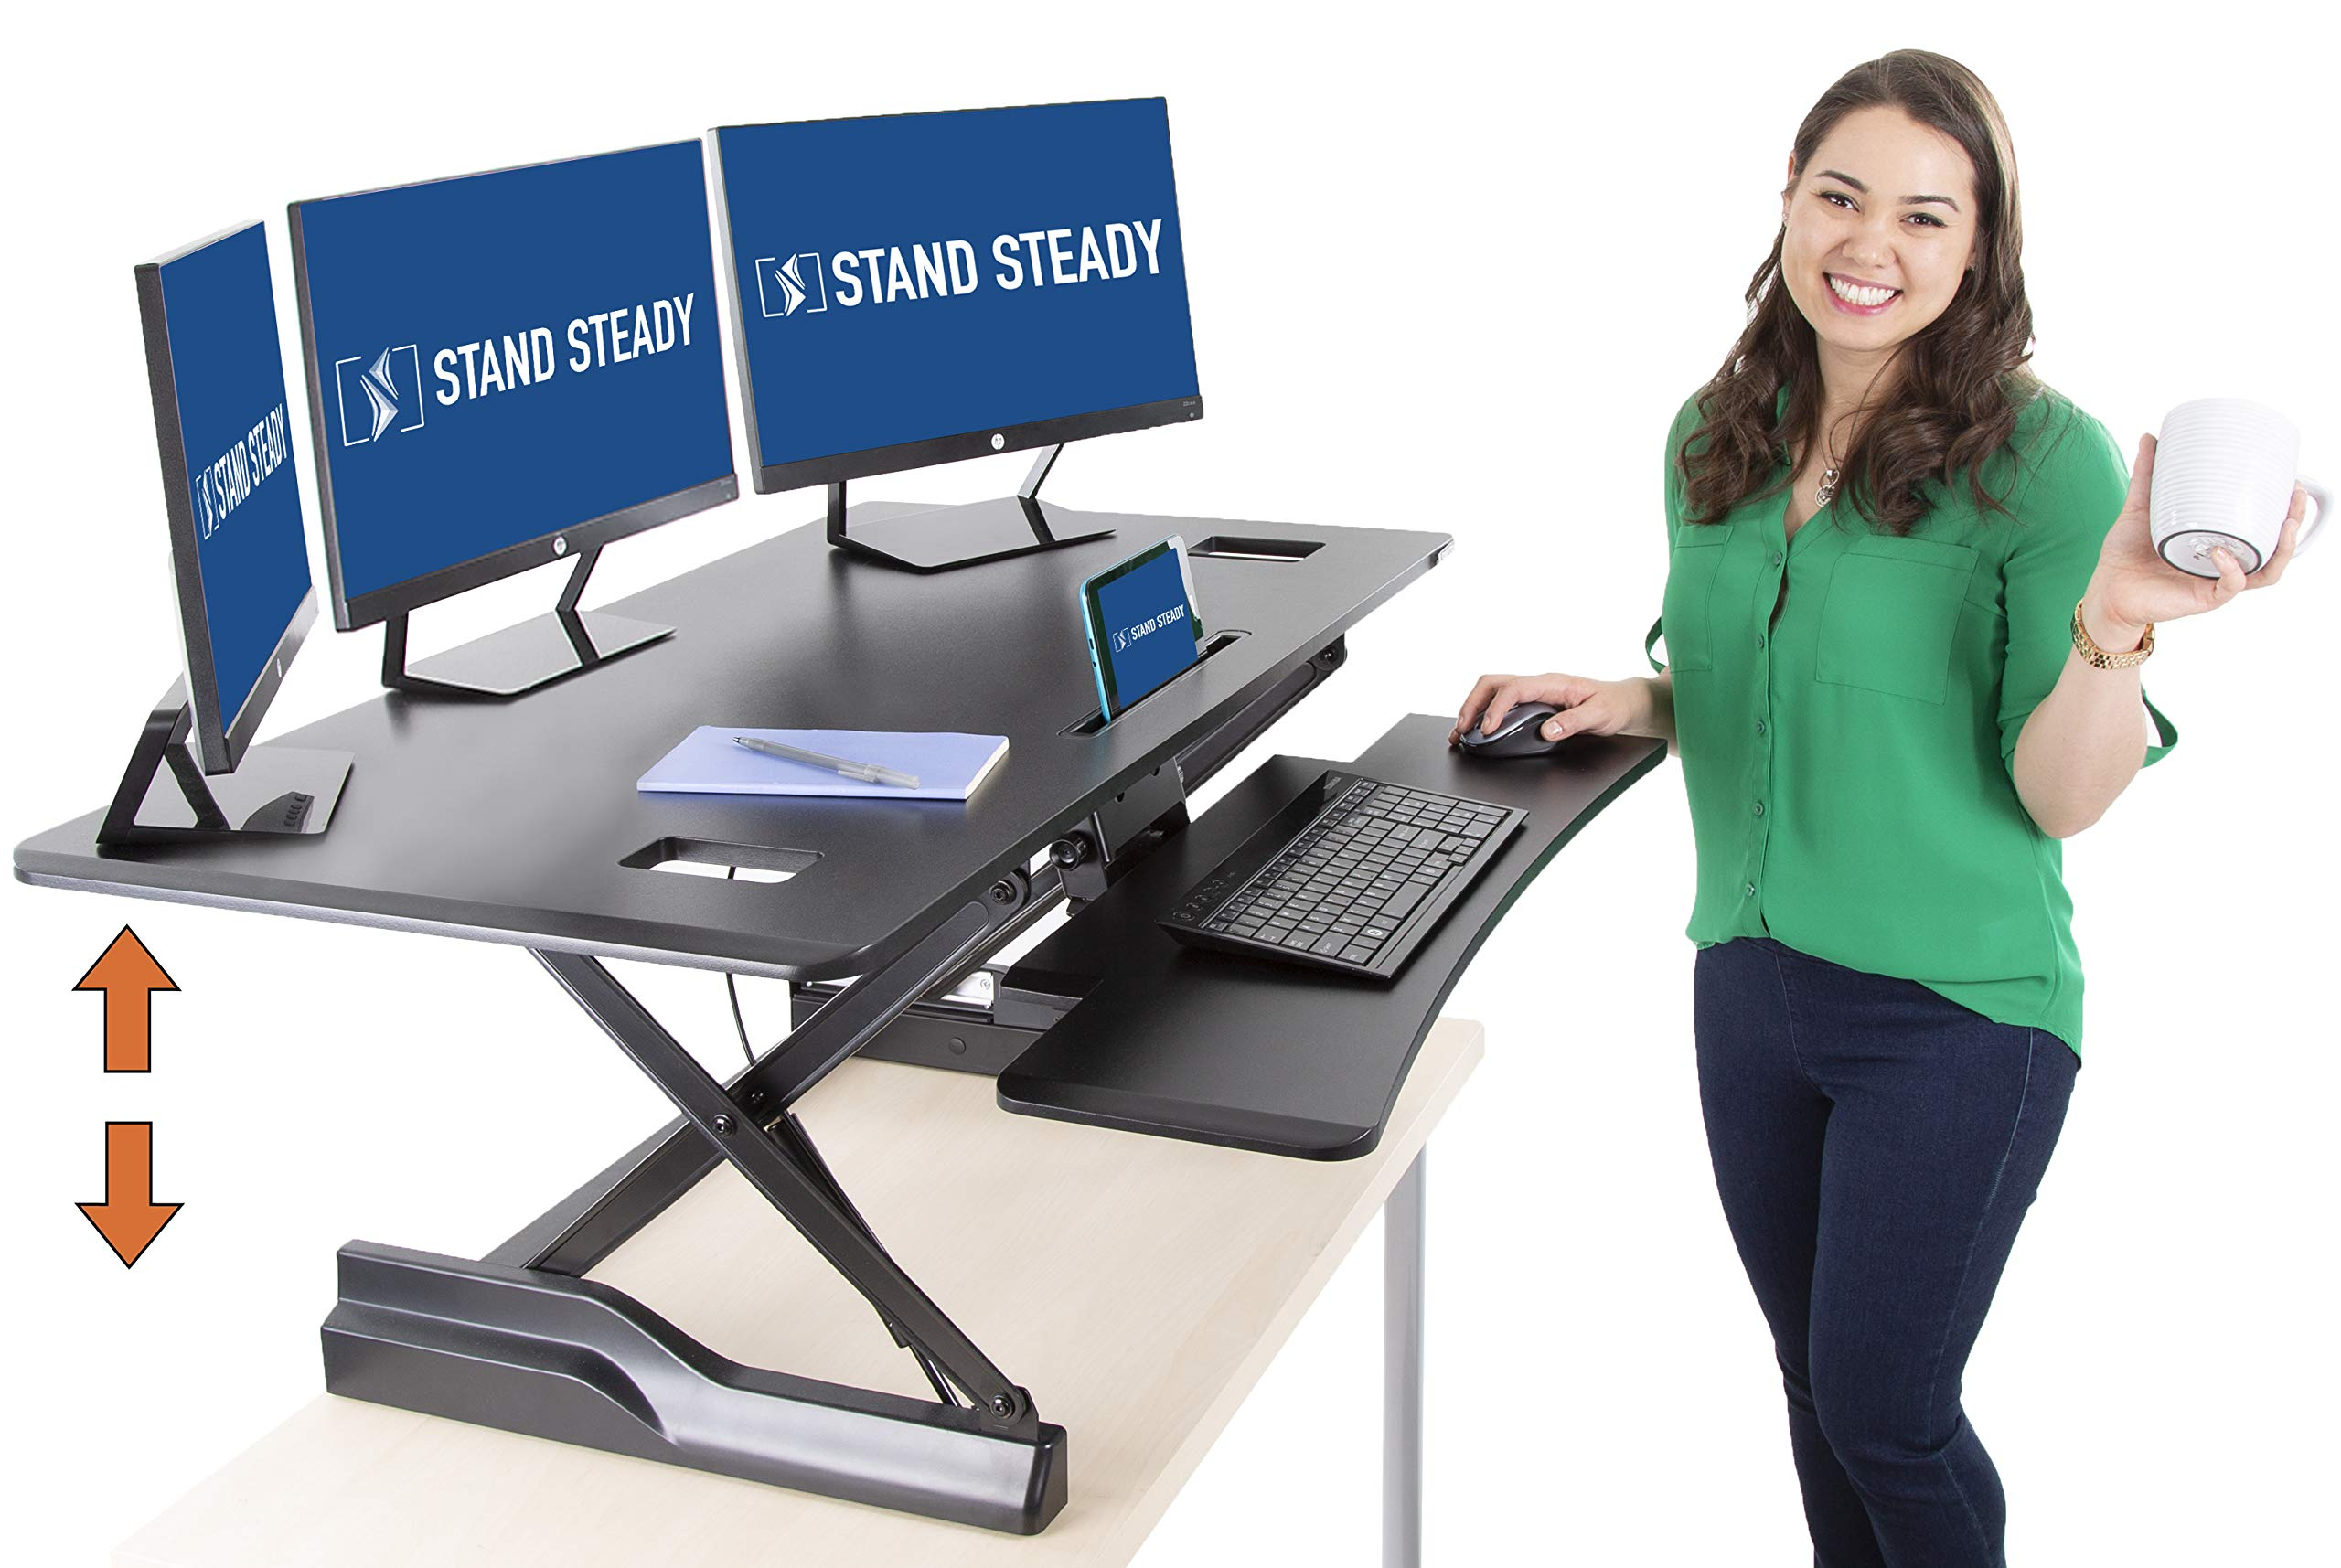 Flexpro Hero XL 47'' Dual Level Standing Desk - Large Work Space with Extra Level for Keyboard - Instantly Convert Any Surface to a Stand-Up Desk (47'' x 31'') by Stand Steady